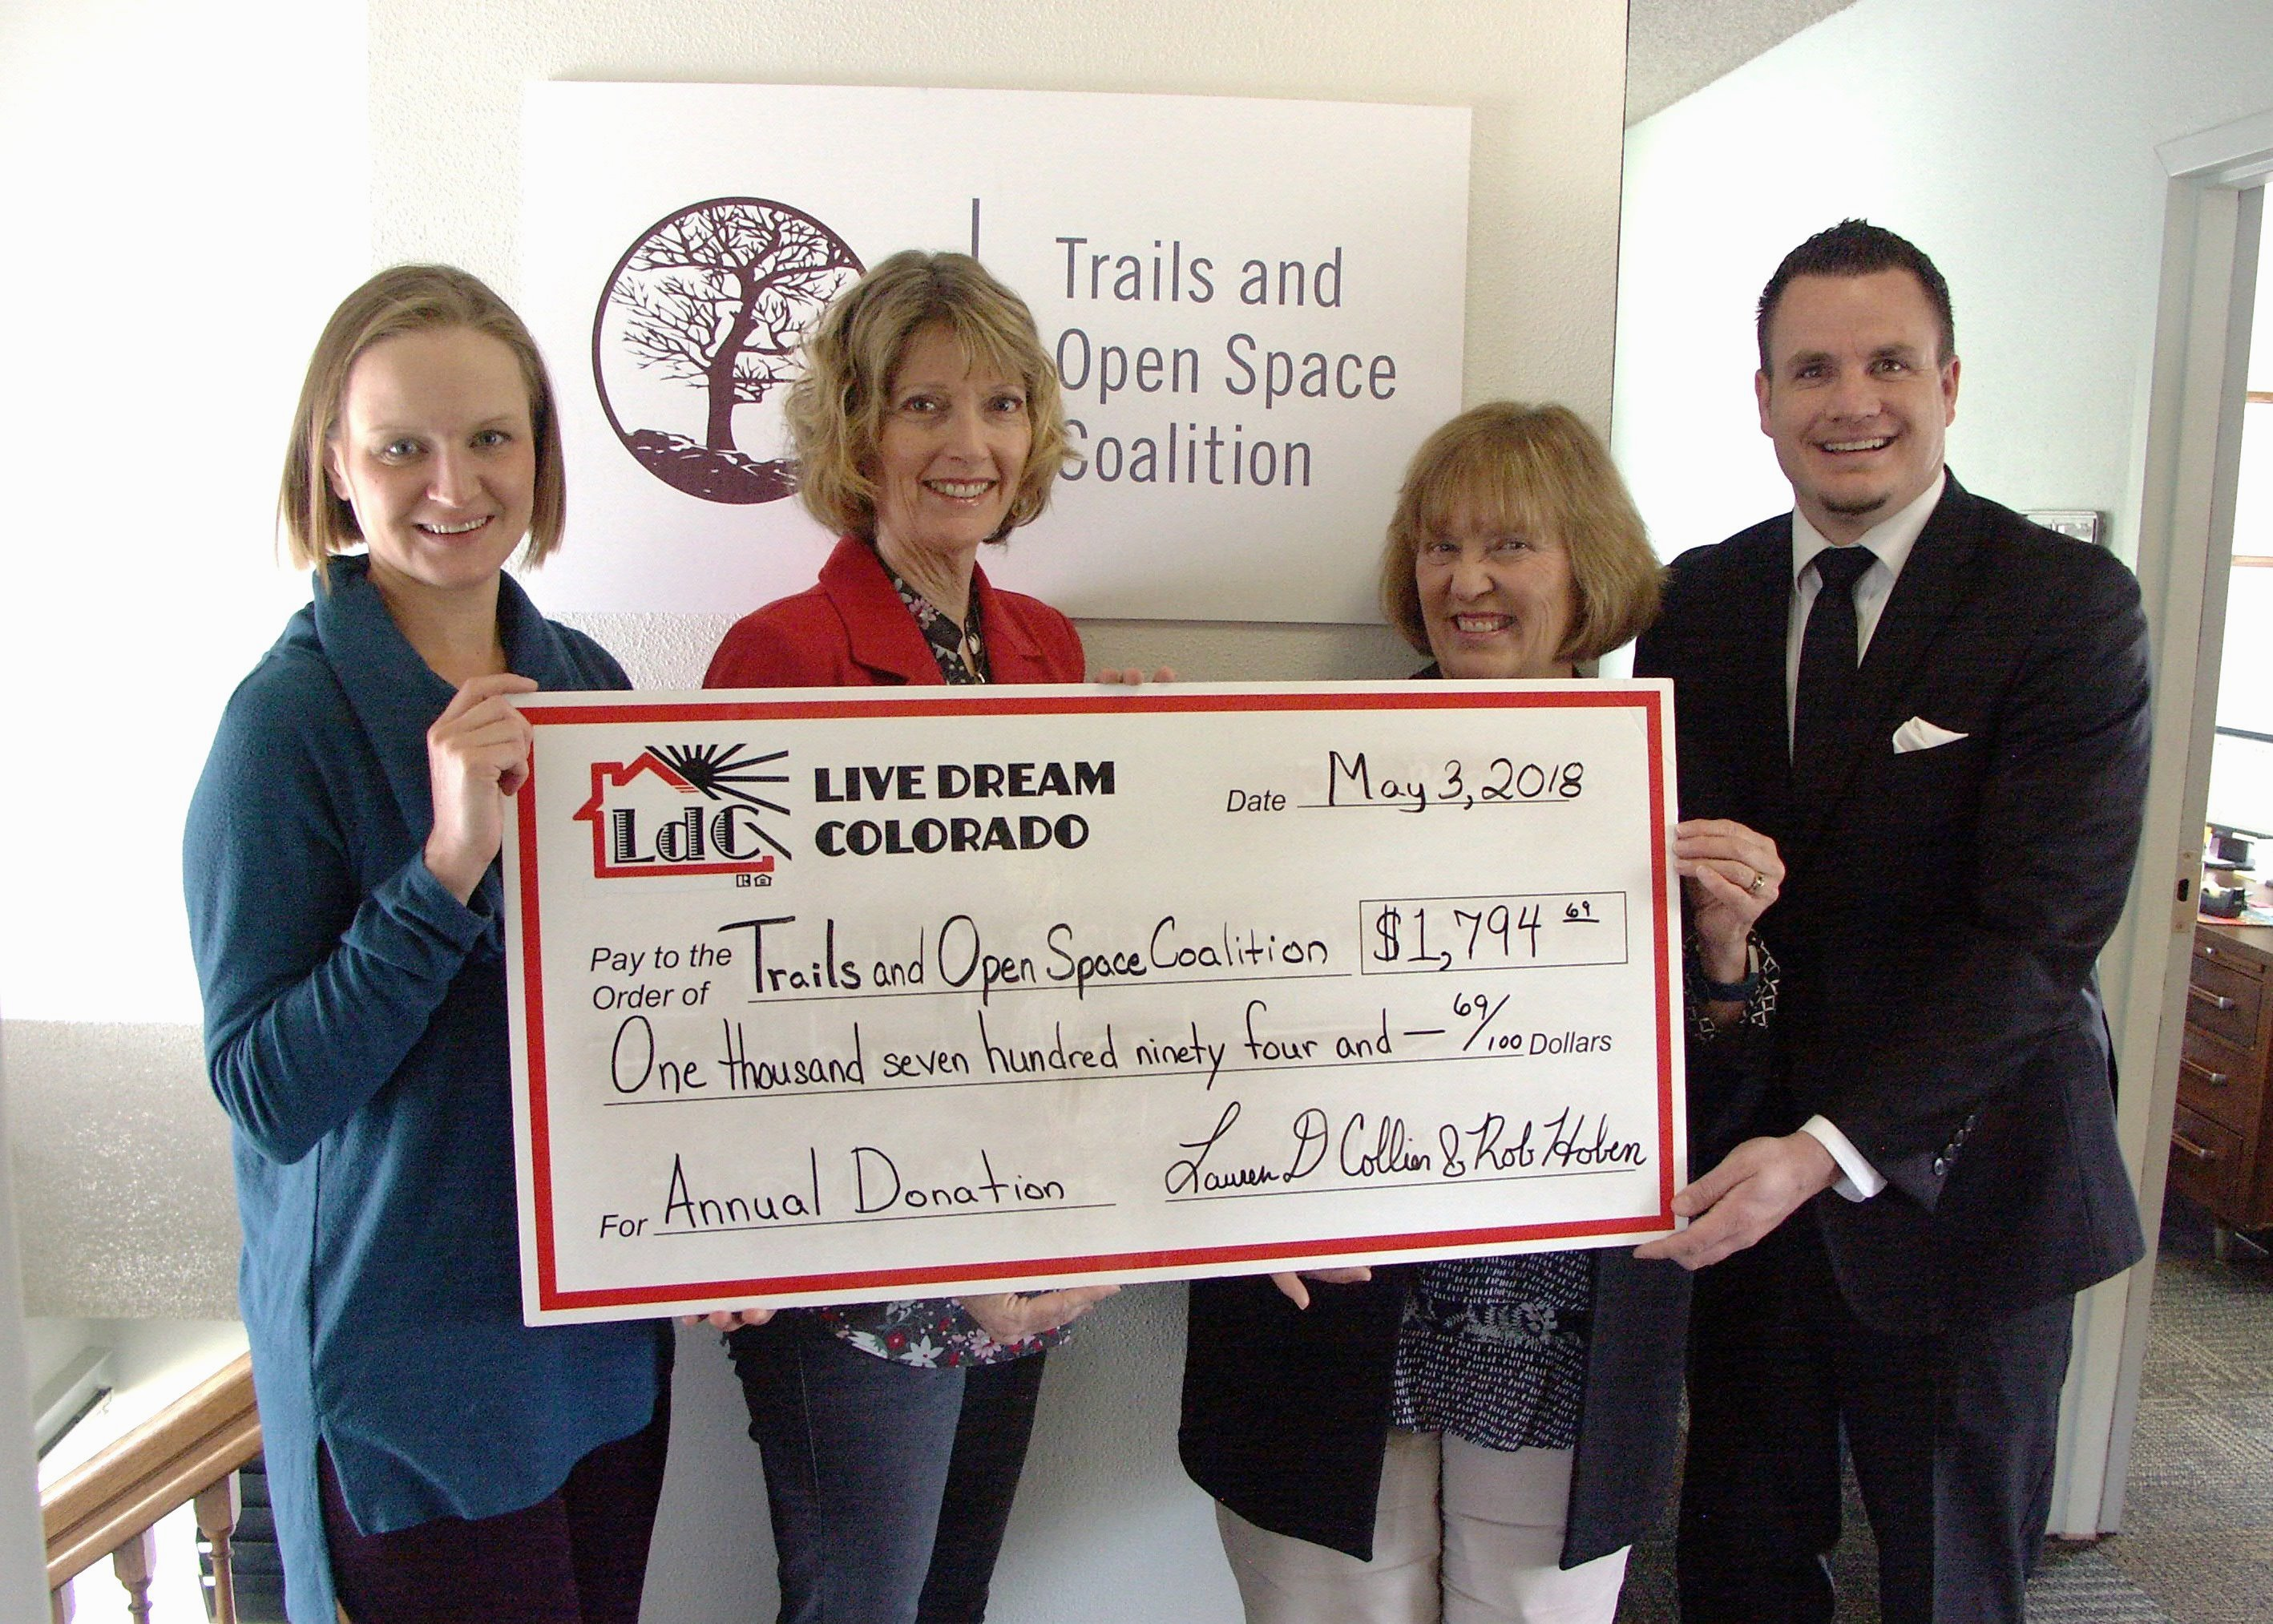 Live Dream Colorado Donates A Portion Of Their Annual Proceeds To Trails And Open Space Coalition To Help Protect Natural Outdoor Places In Colorado Springs